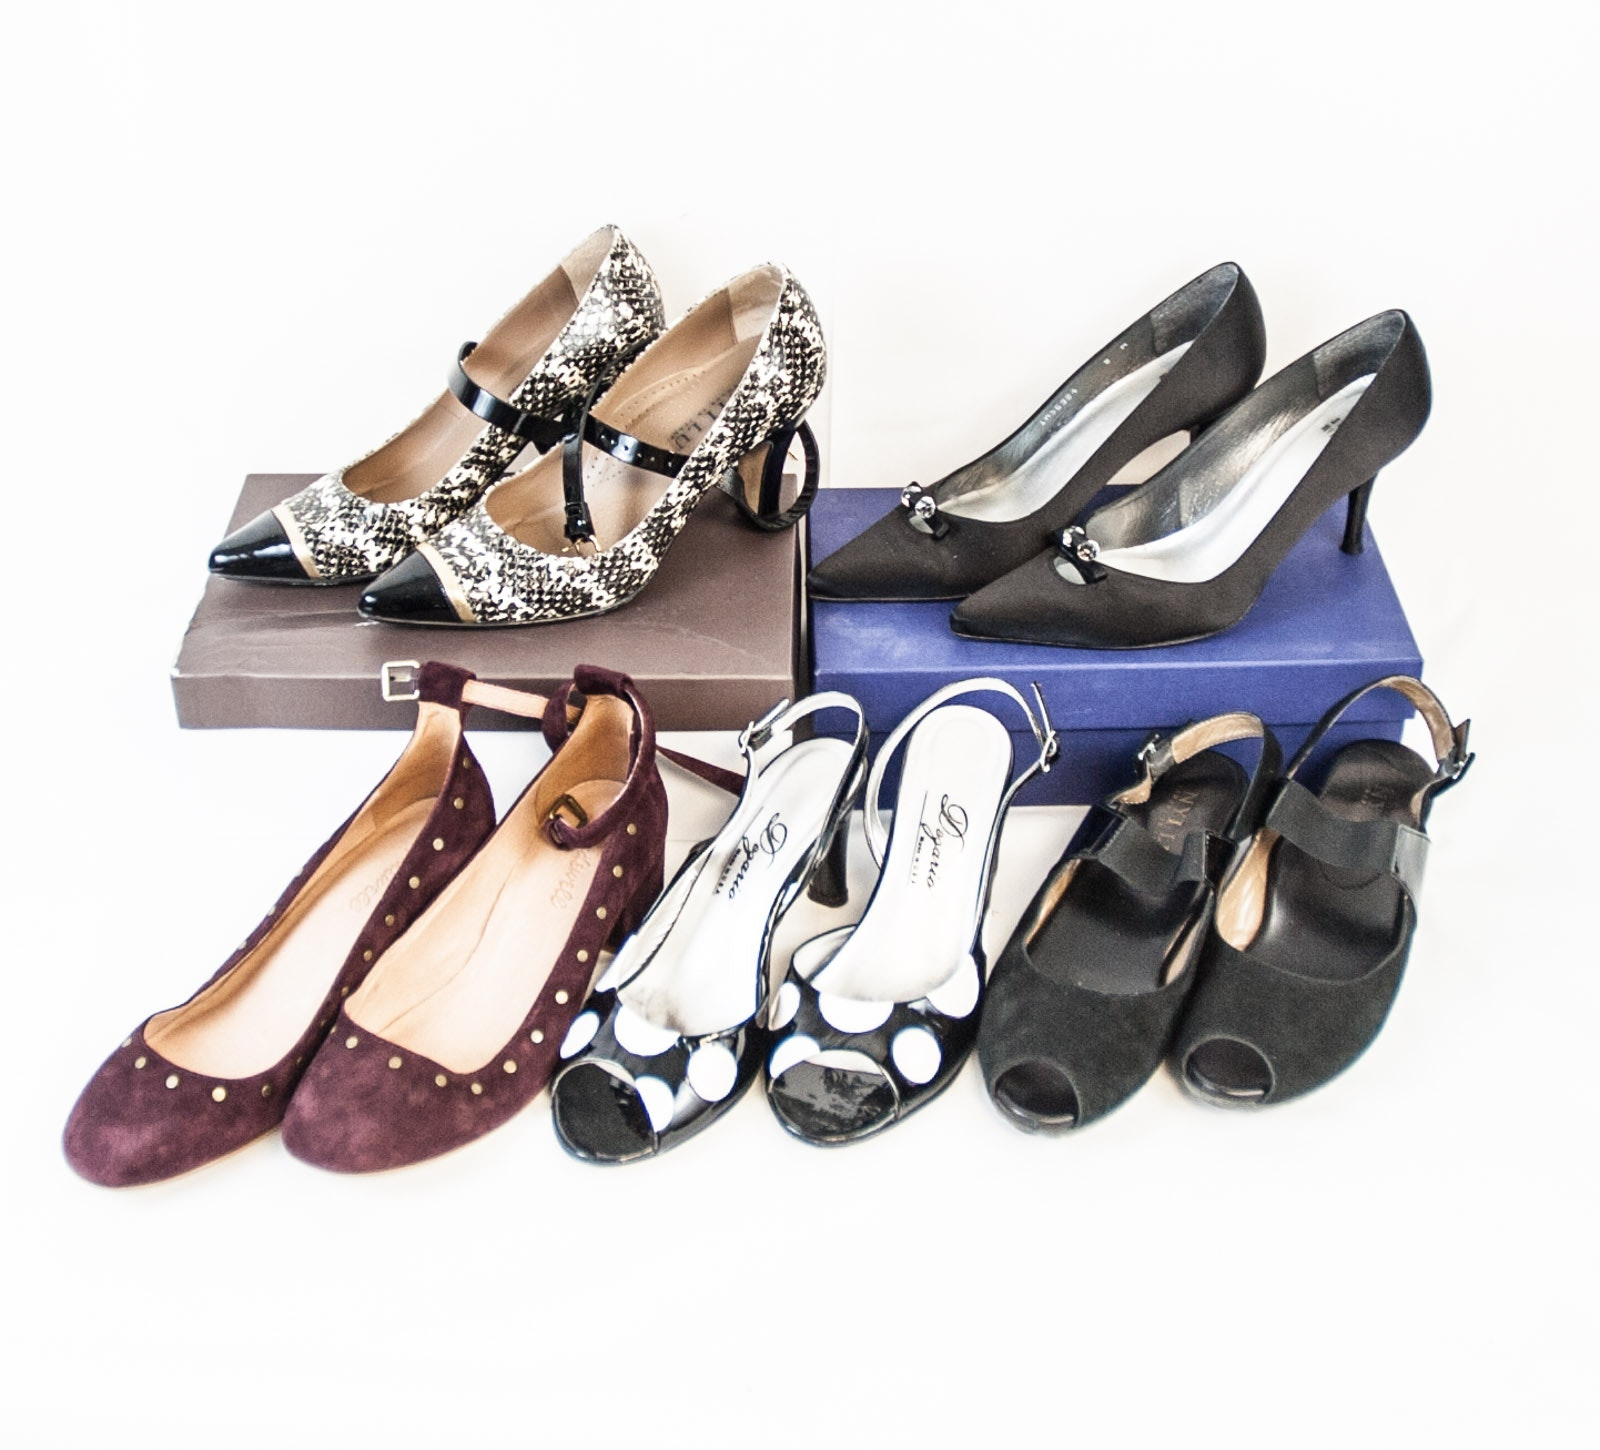 Assortment of Women's Heels Including Anyi Lu